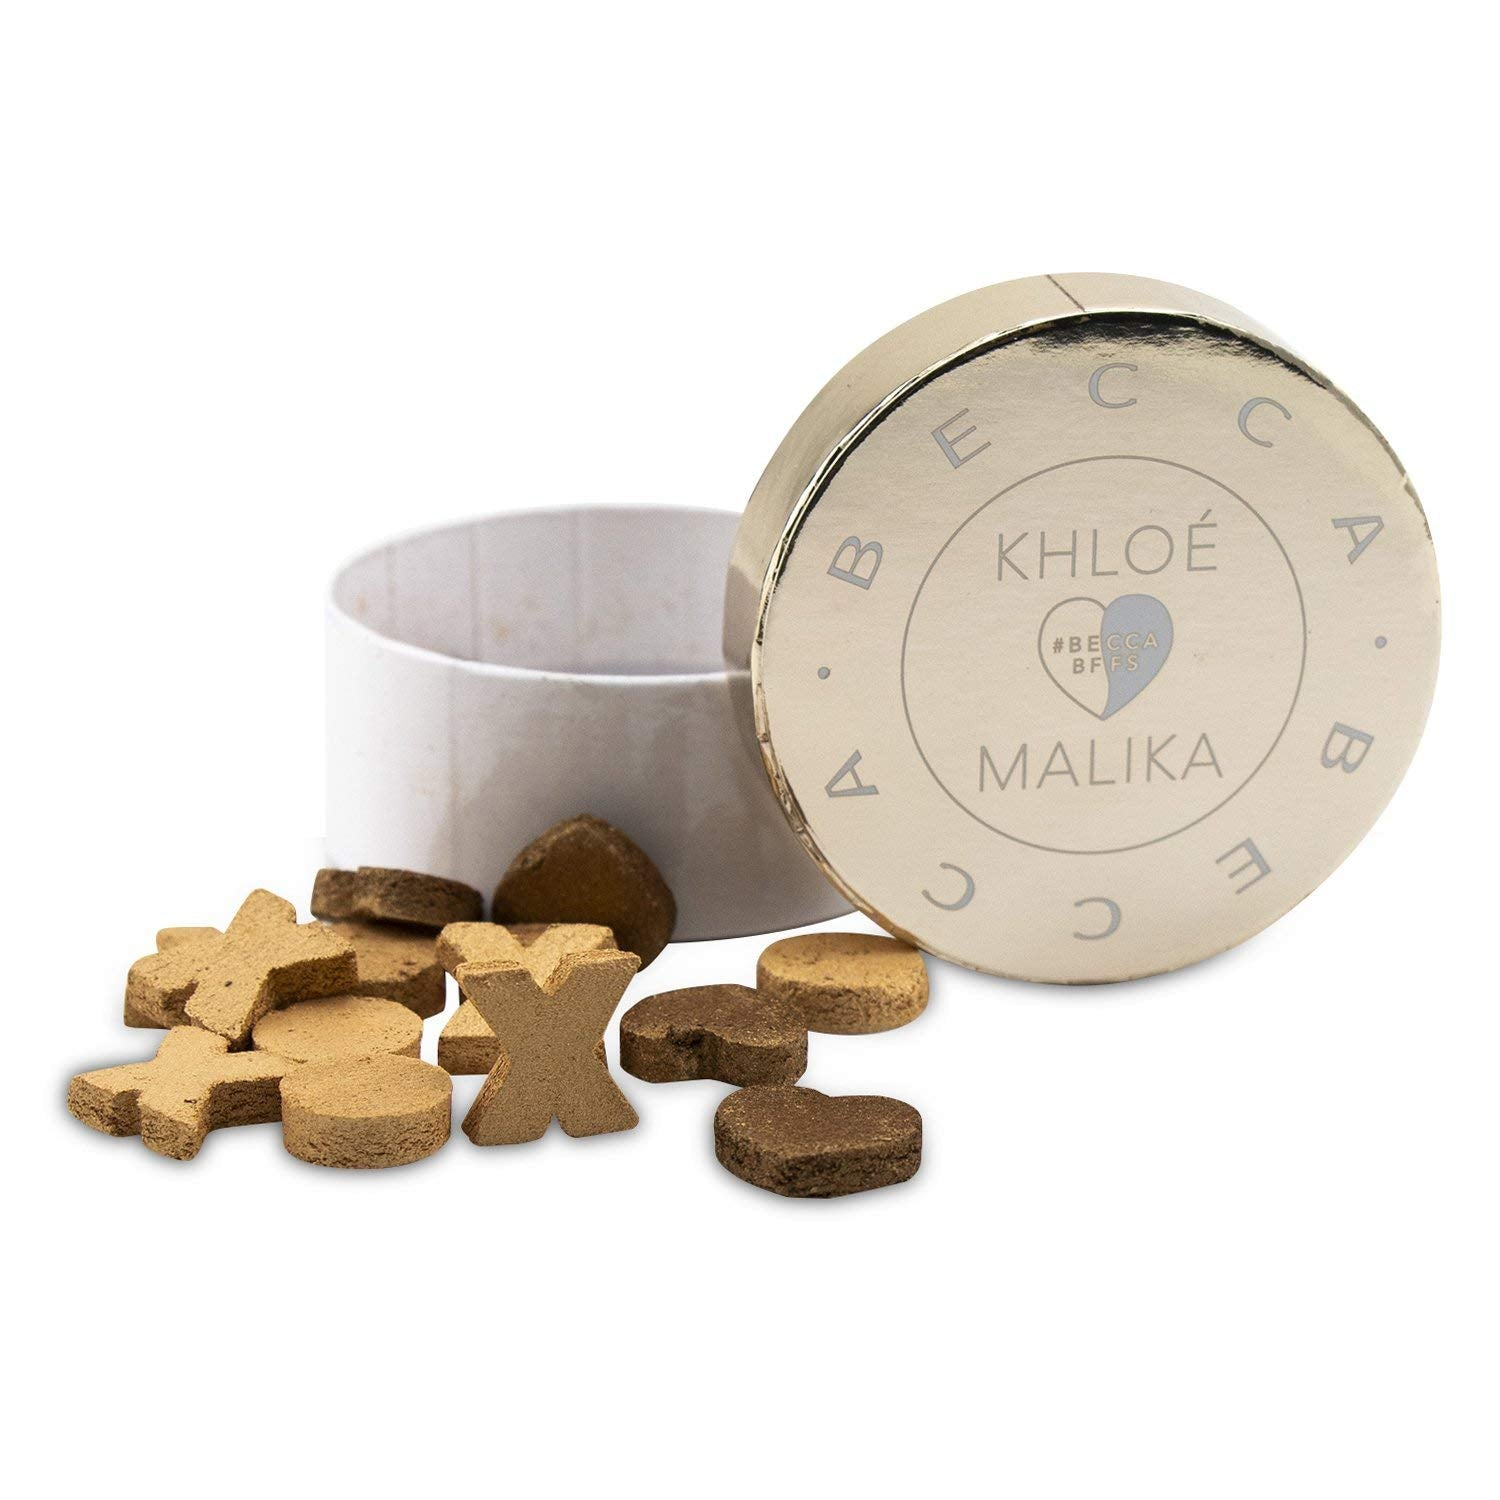 WHOLESALE BECCA KHLOE X MALIKA BFFS GLOW LETTERS 0.28 OZ - 42 PIECE LOT